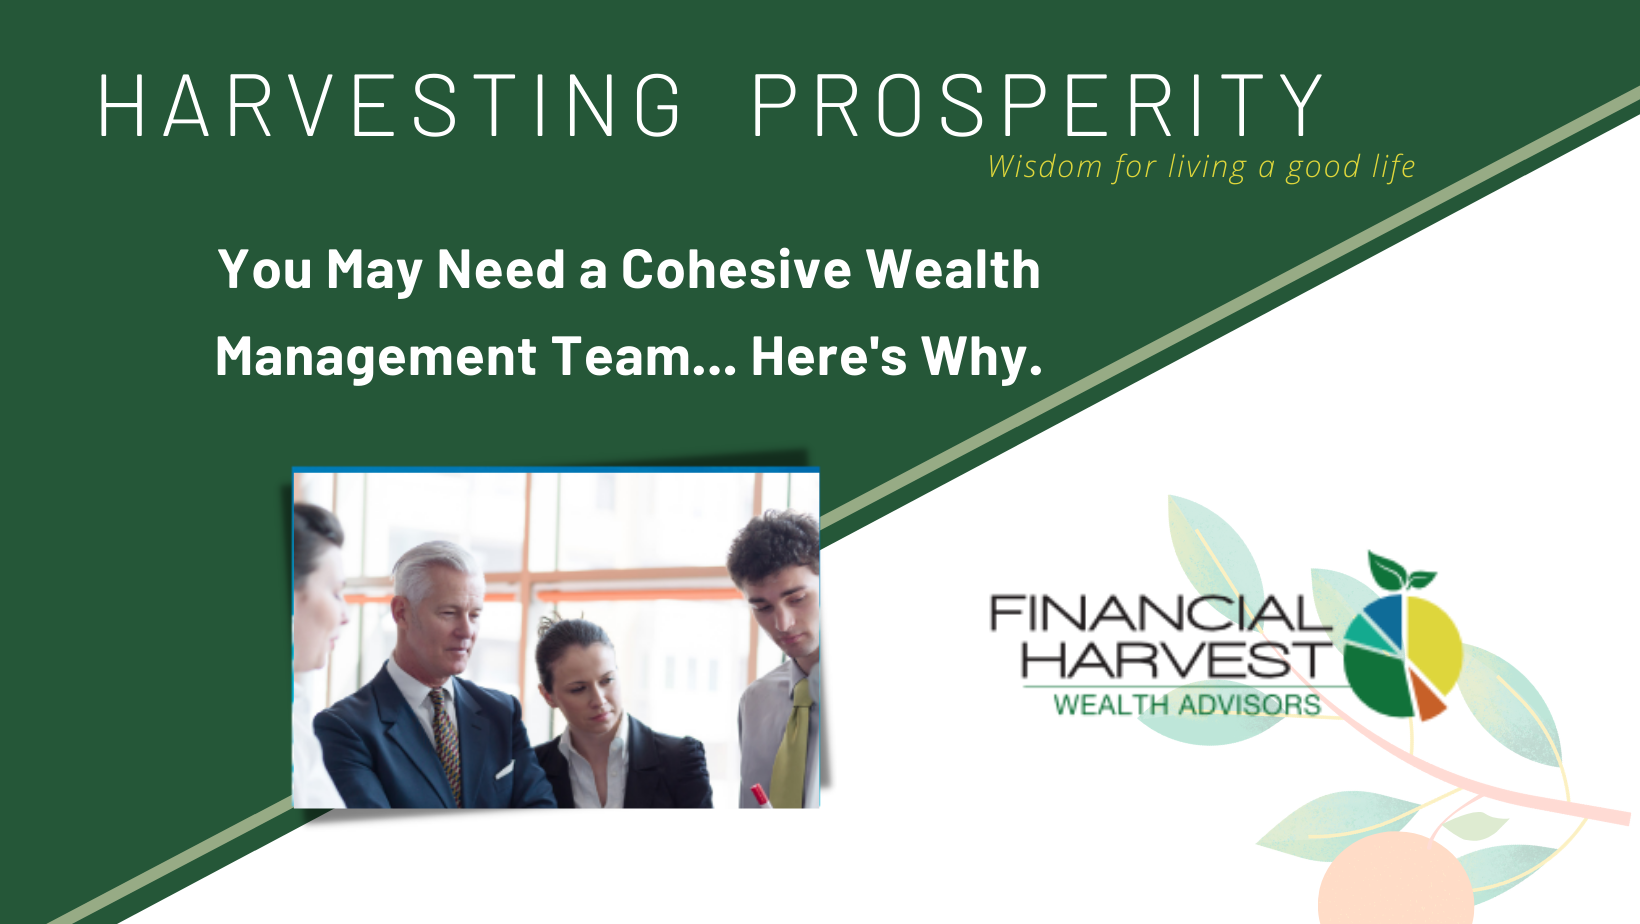 You may need a cohesive wealth management team... Here's why.